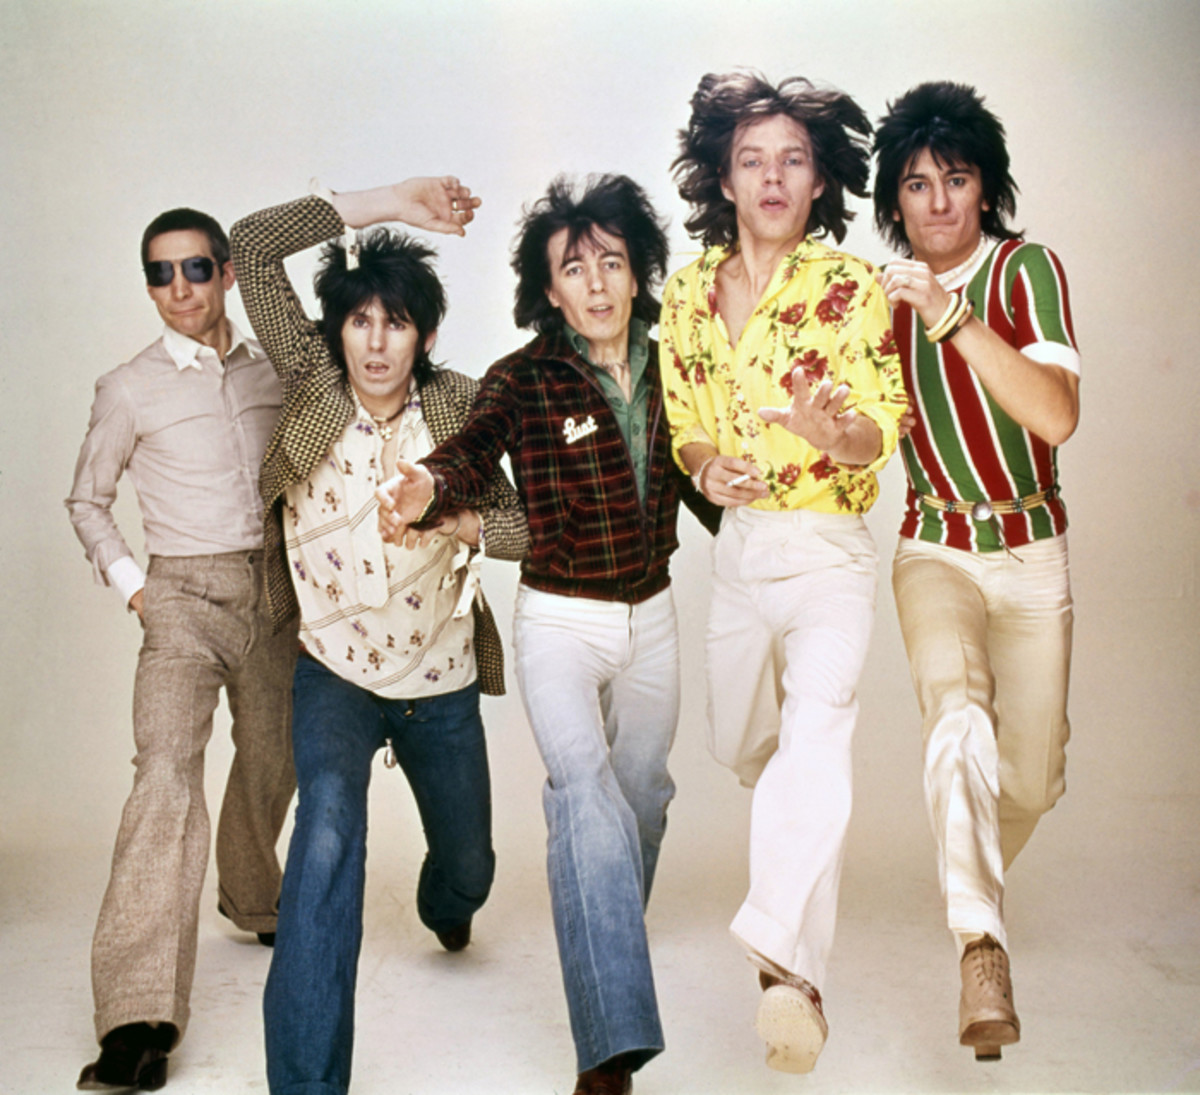 The Rolling Stones in color. All images courtesy of Rolling Stones Archive.